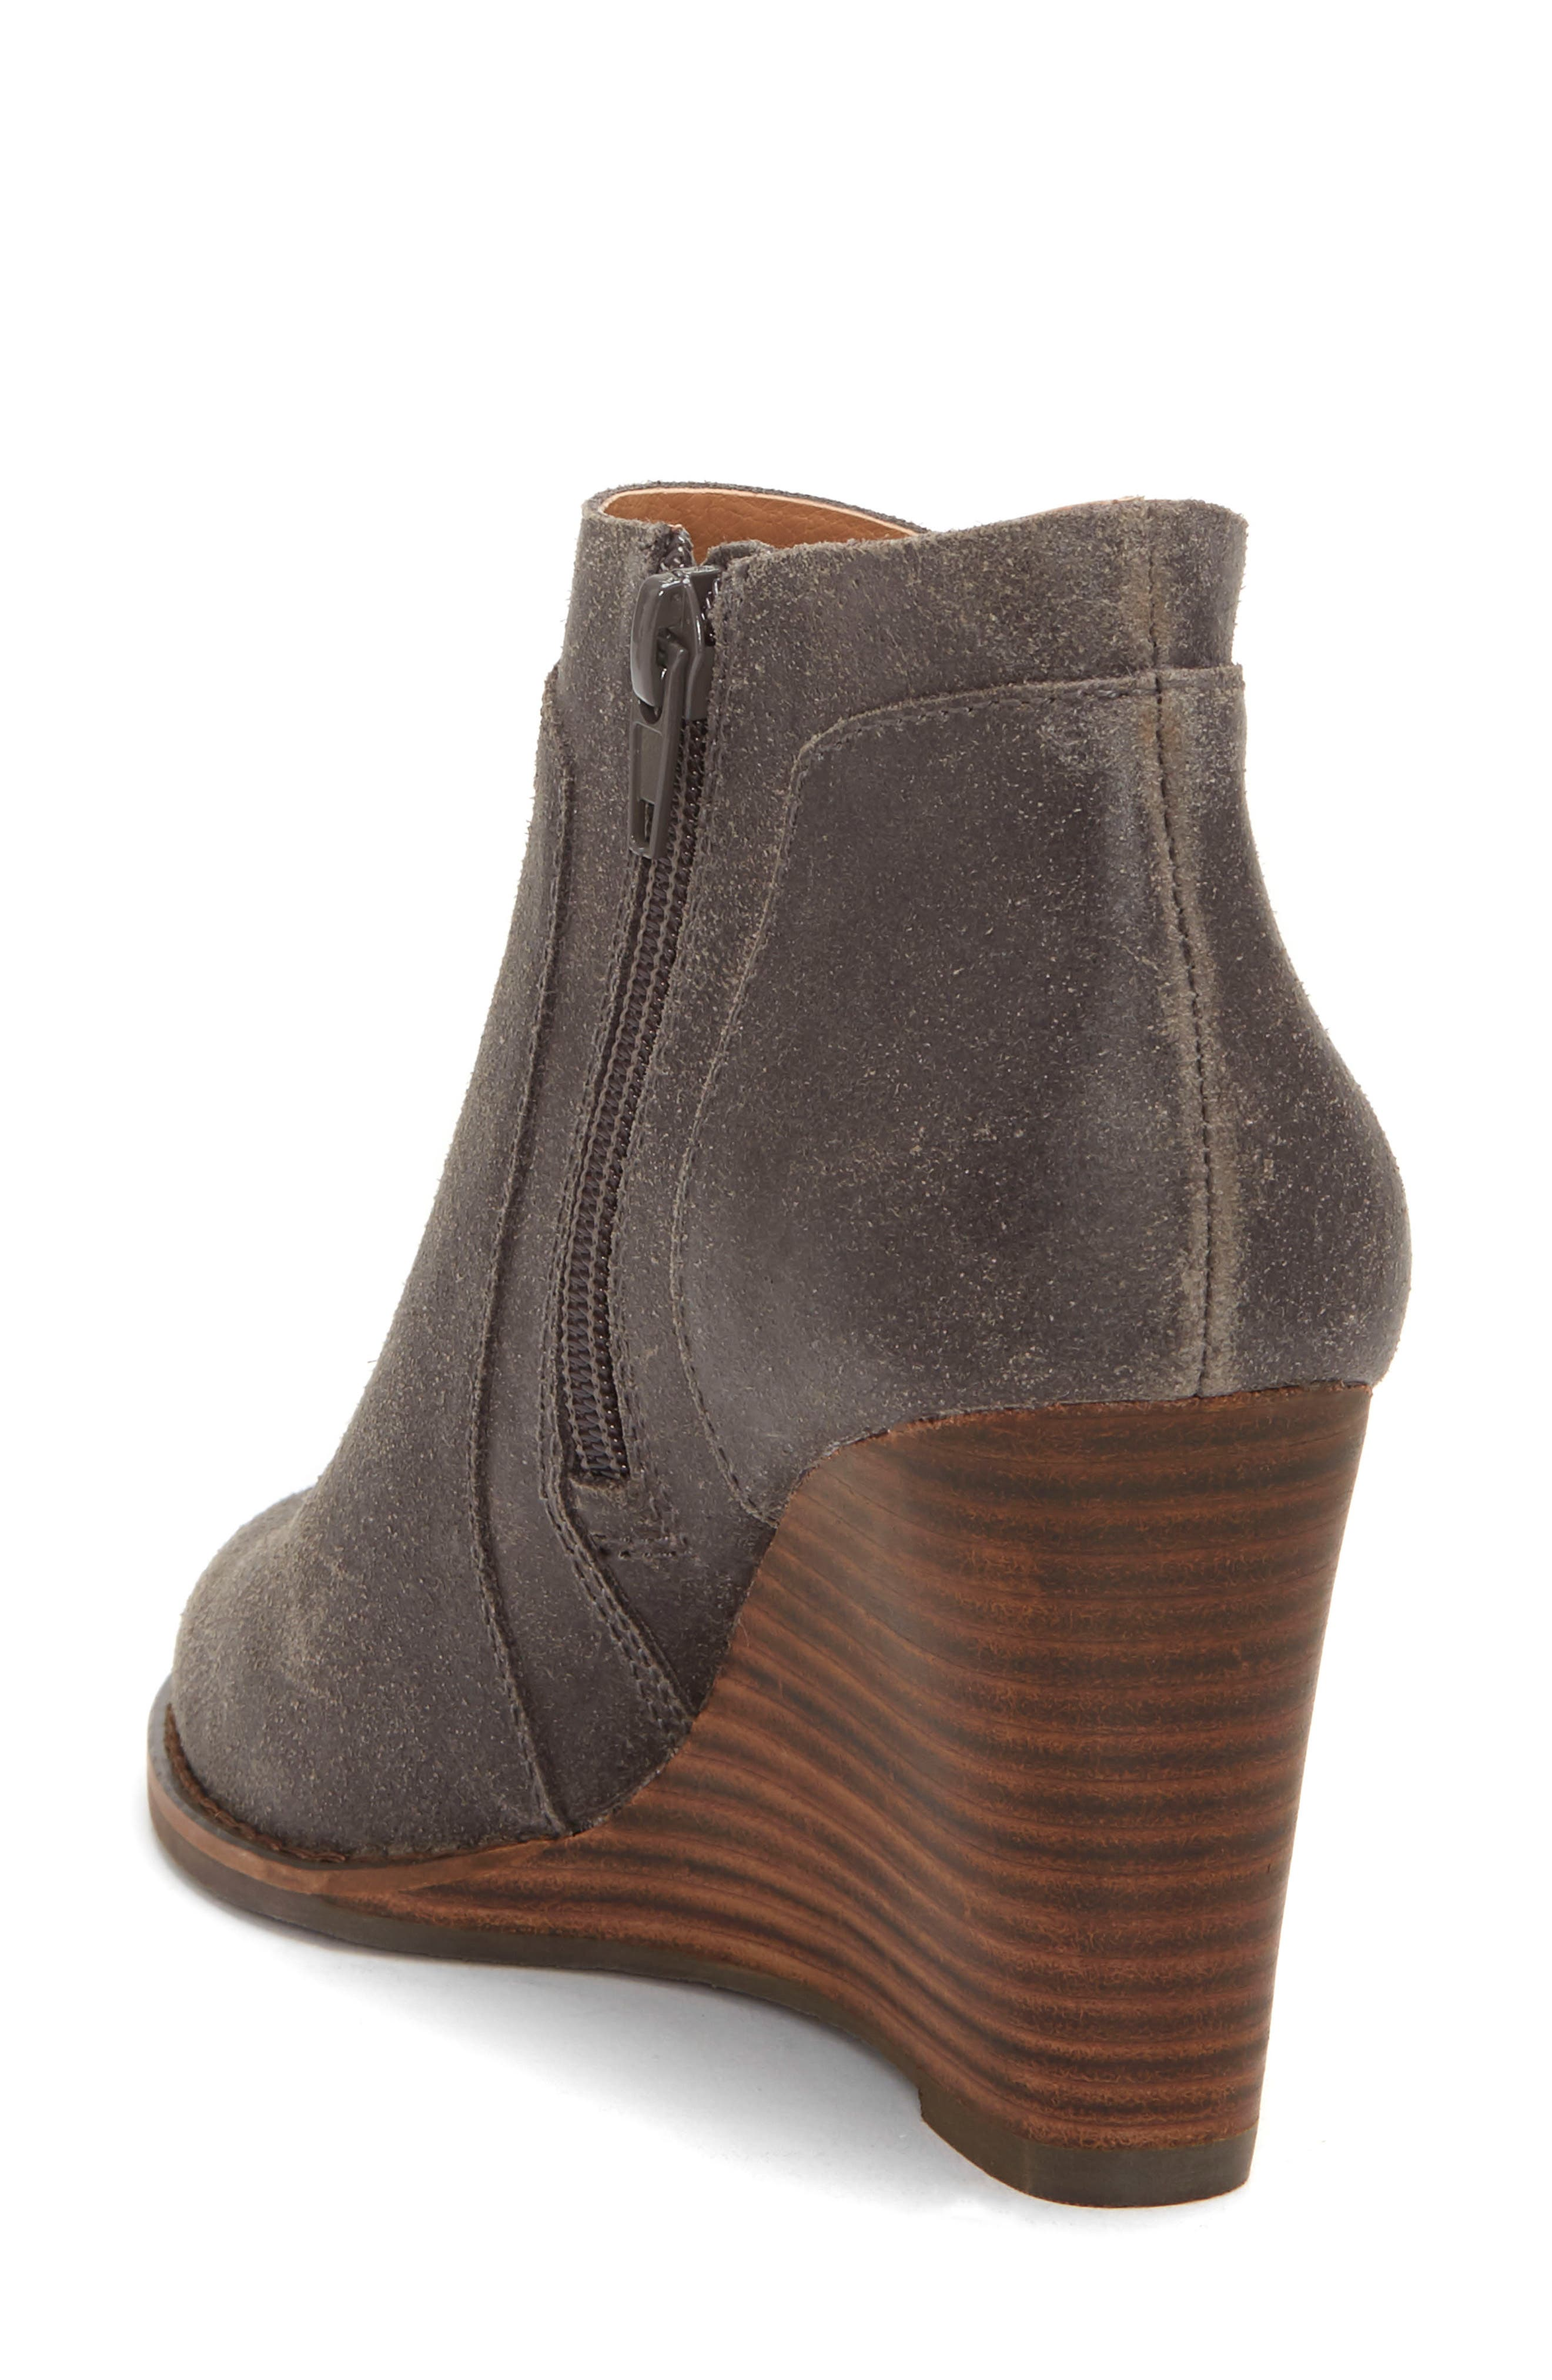 LUCKY BRAND, Yabba Wedge Bootie, Alternate thumbnail 2, color, STORM NUBUCK